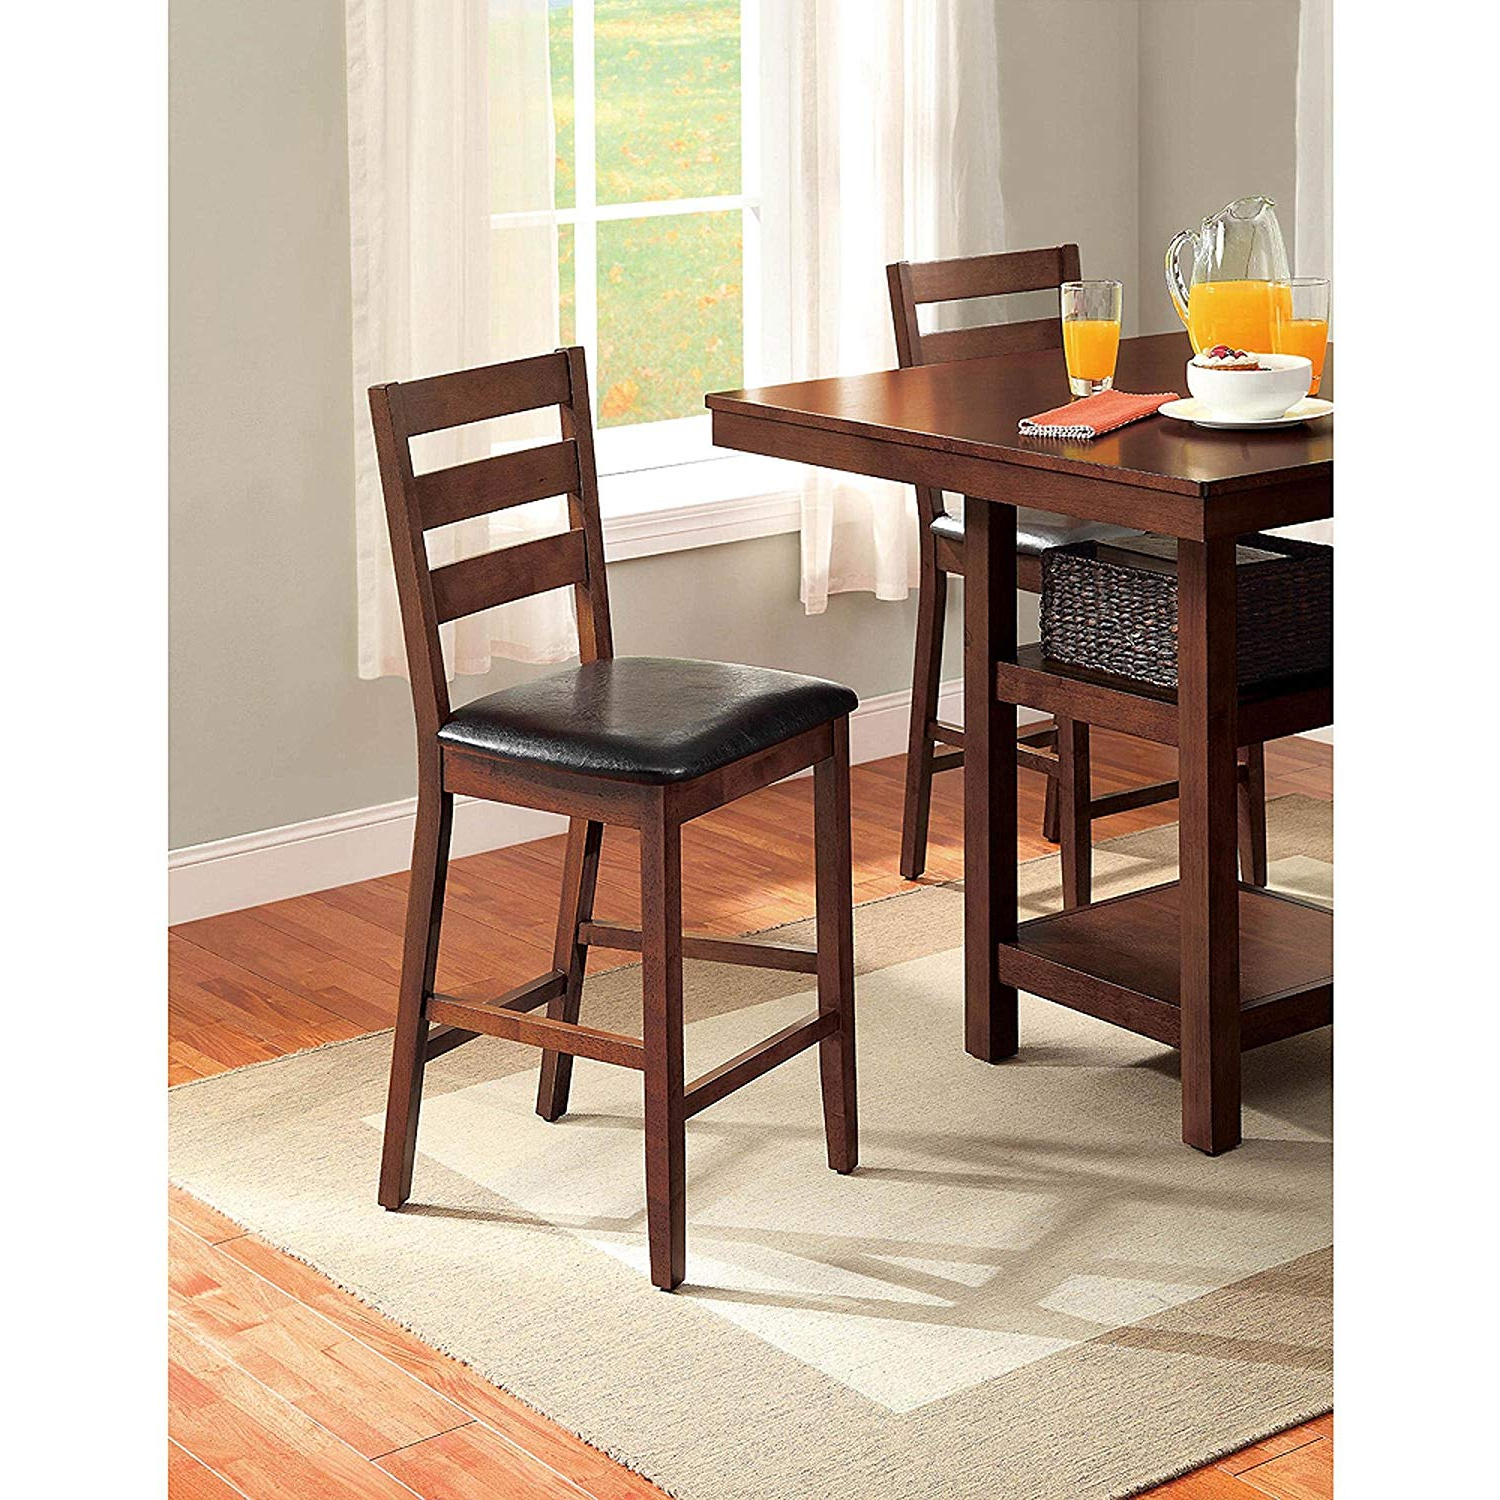 Denzel 5 Piece Counter Height Breakfast Nook Dining Sets with Most Up-to-Date Amazon - 5-Piece Dalton Park Counter Height Dining Set, Mocha